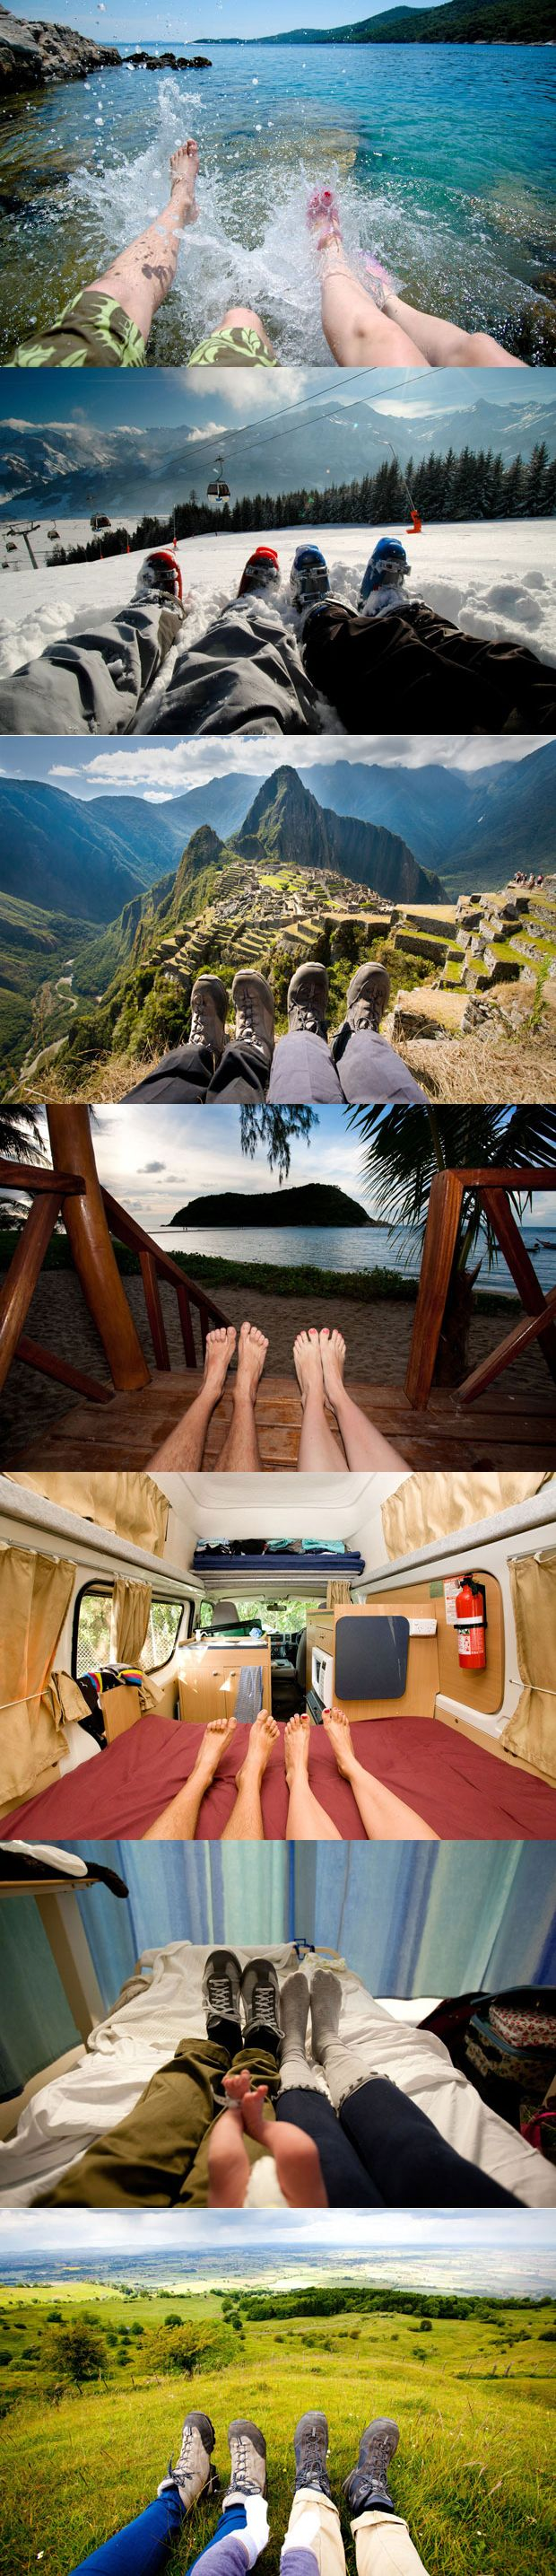 A collection of photographs by London photographer Tom Robinson that documents the couple's travels over six years by just showing their feet and location. Great twist with the addition of a third pair of feet along the way... their daughter. #photography #travel #feet #family_picture #photo_journal